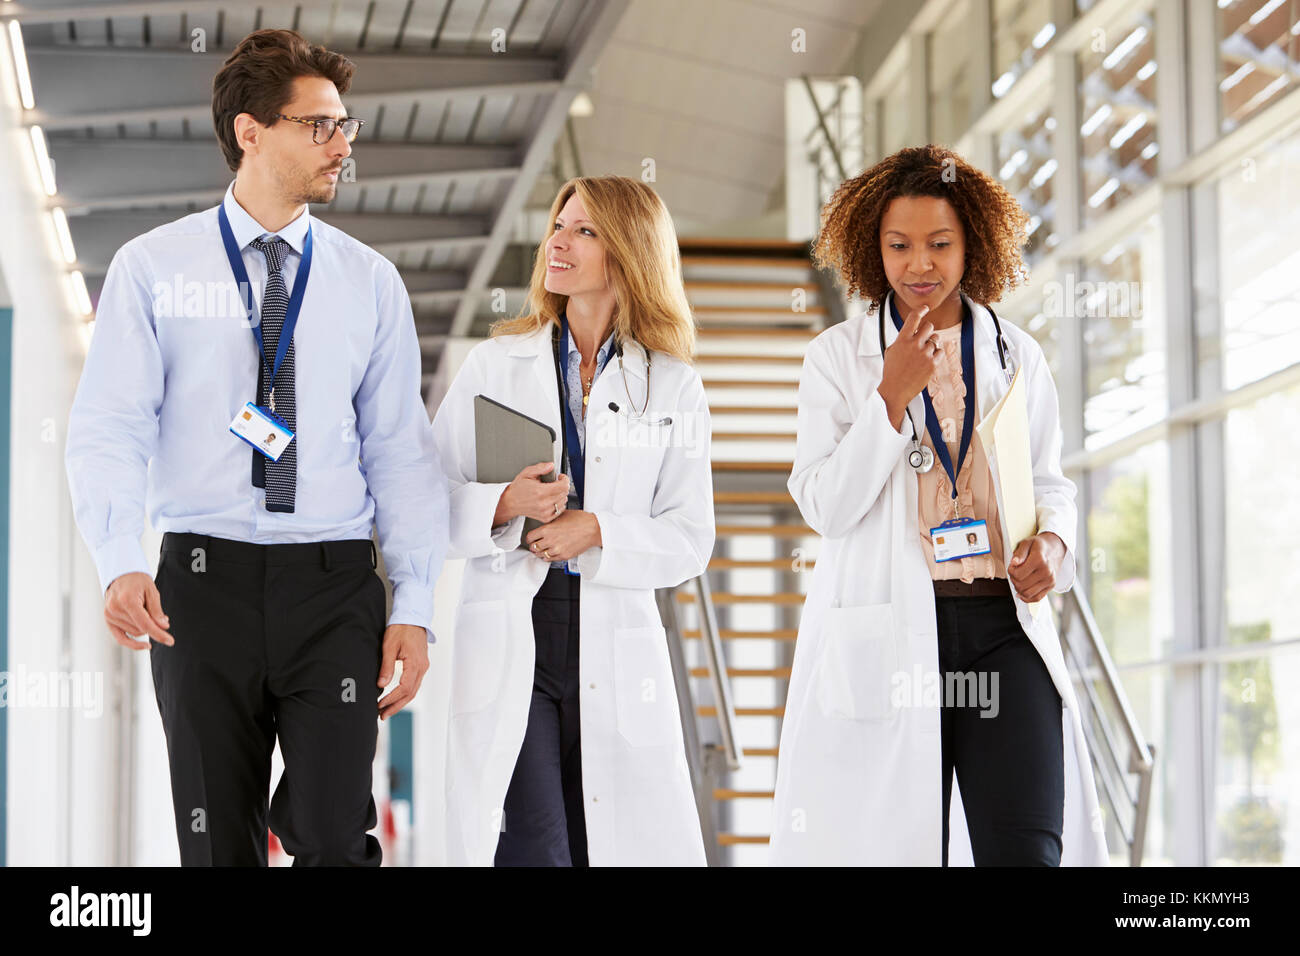 Three young male and female doctors walking in hospital - Stock Image